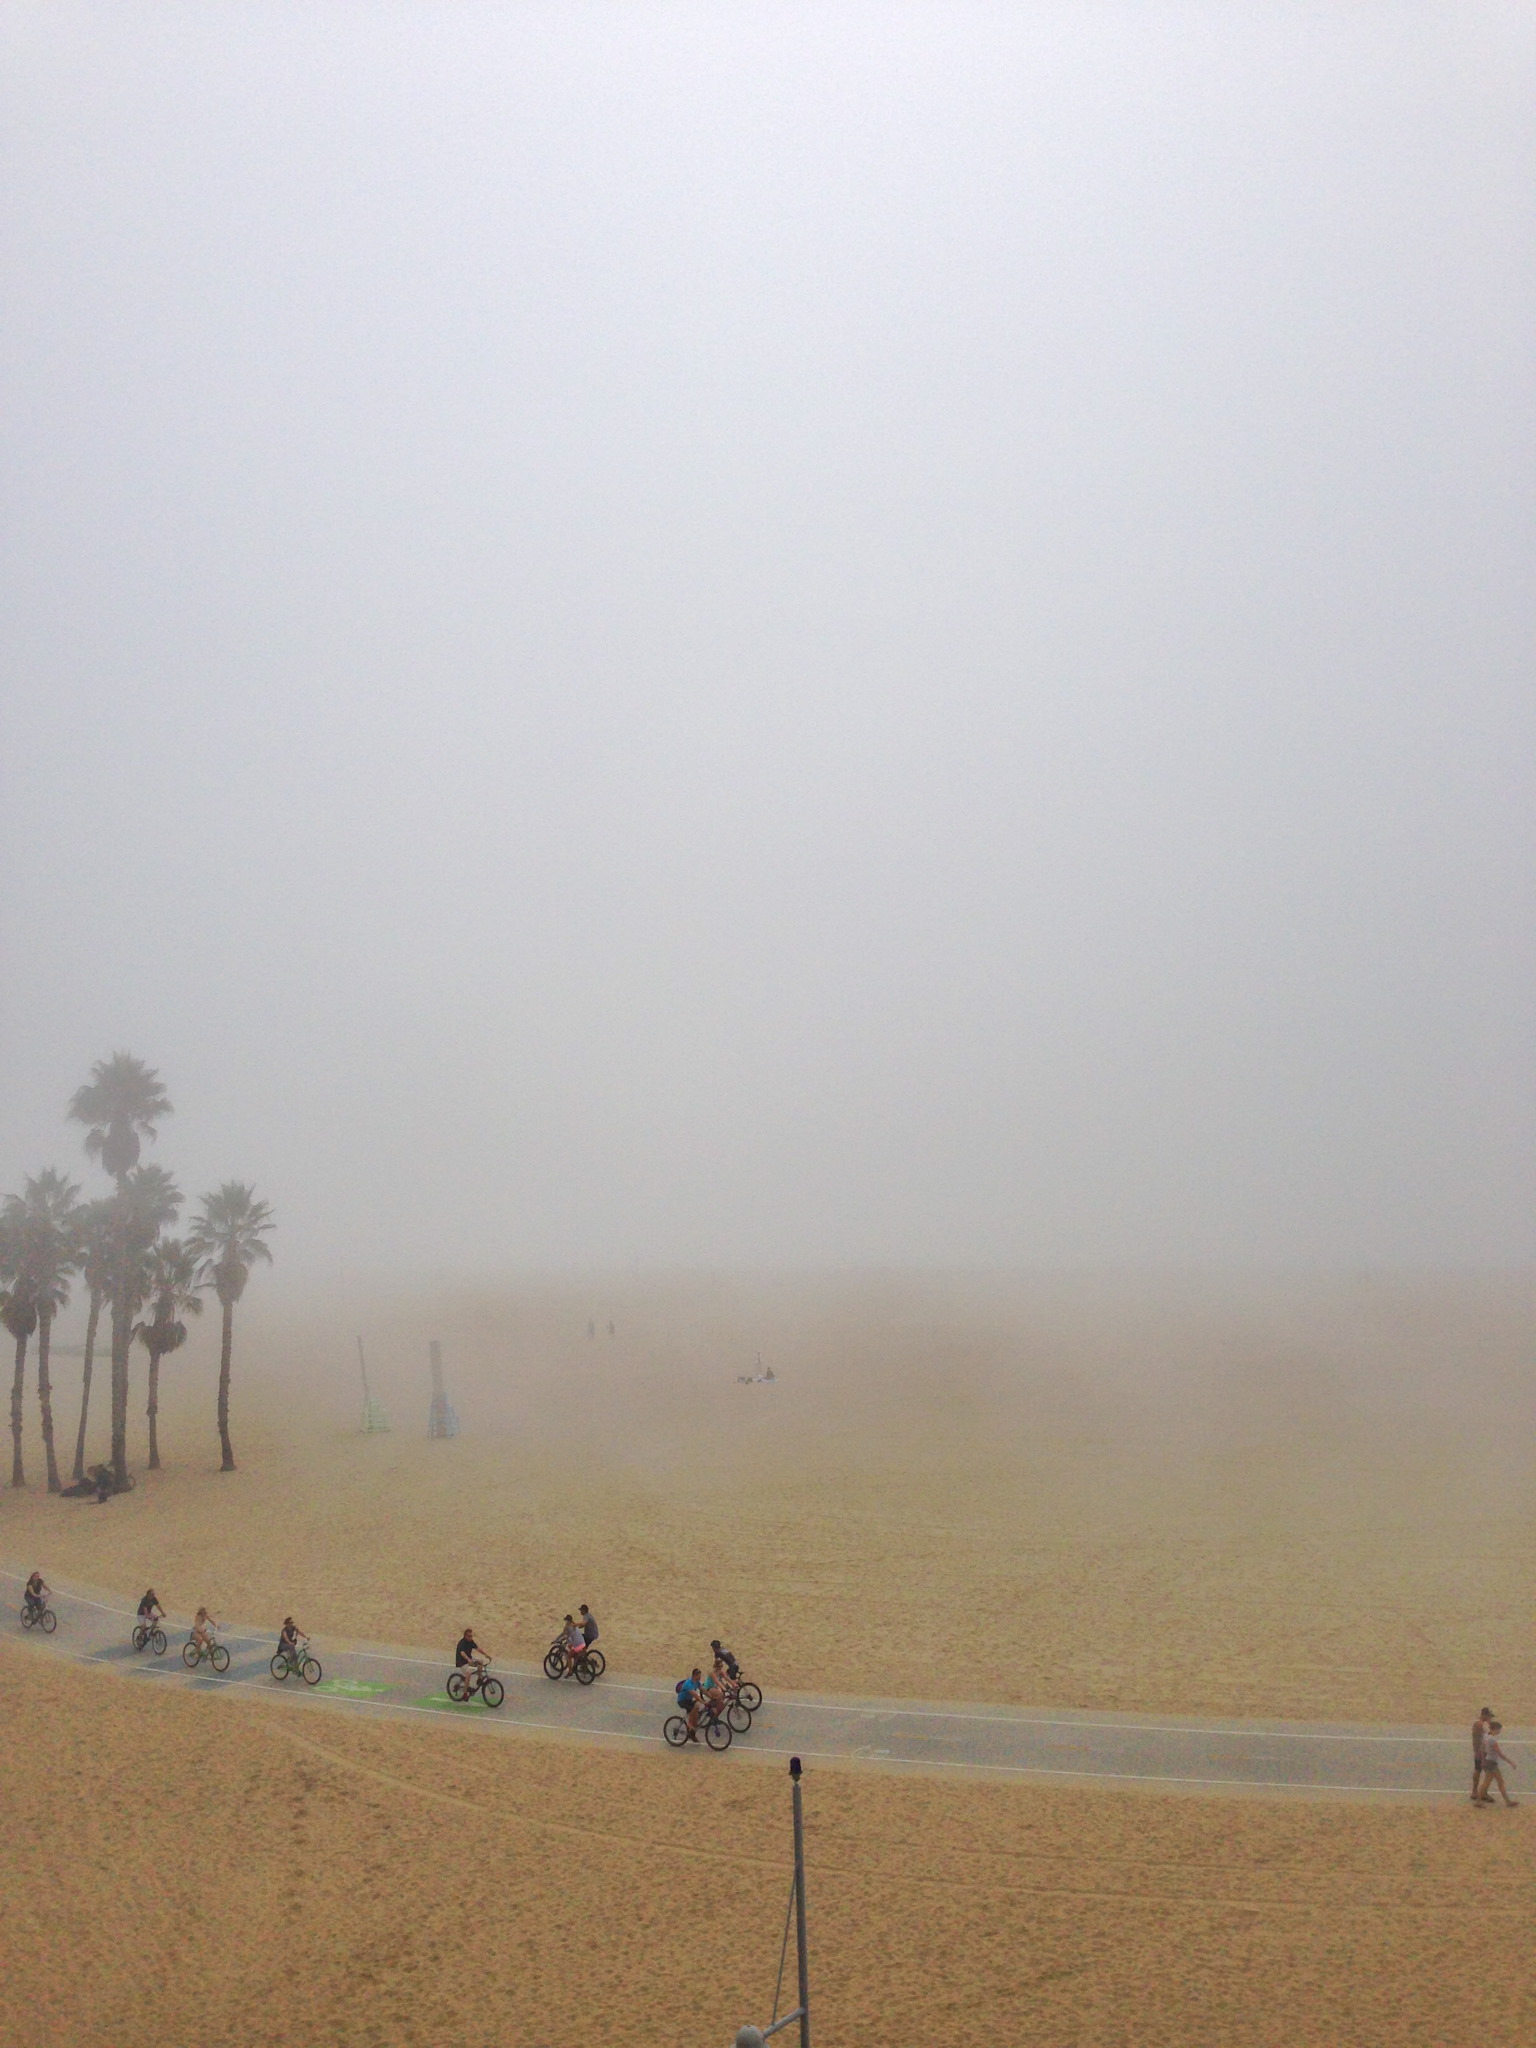 santa monica beach bike path in fog